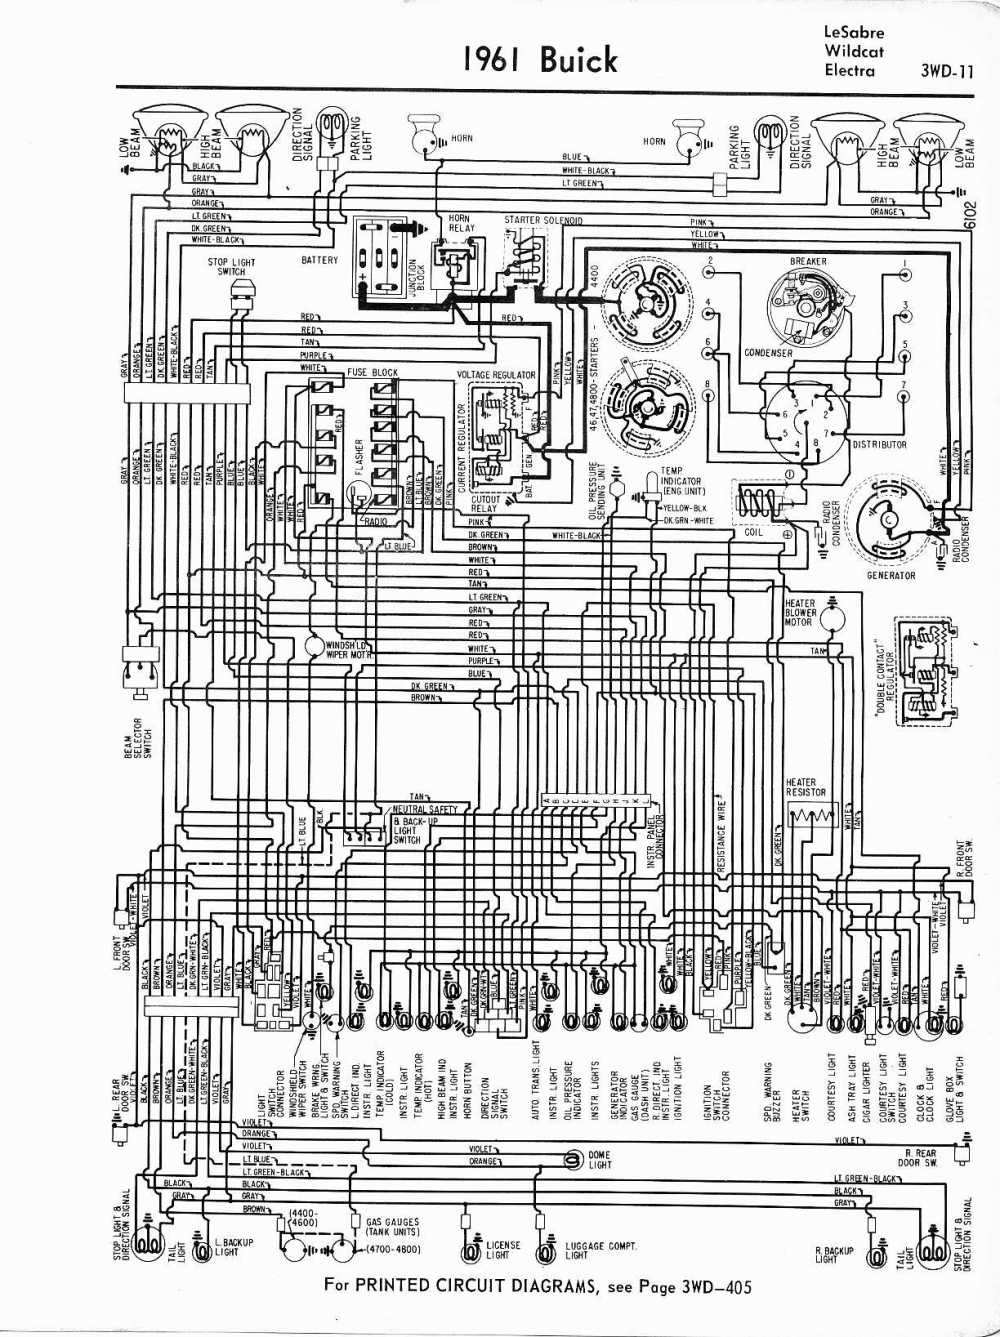 medium resolution of 1996 buick lesabre wiring diagram schematic wiring diagrams buick color codes 97 buick wiring diagram